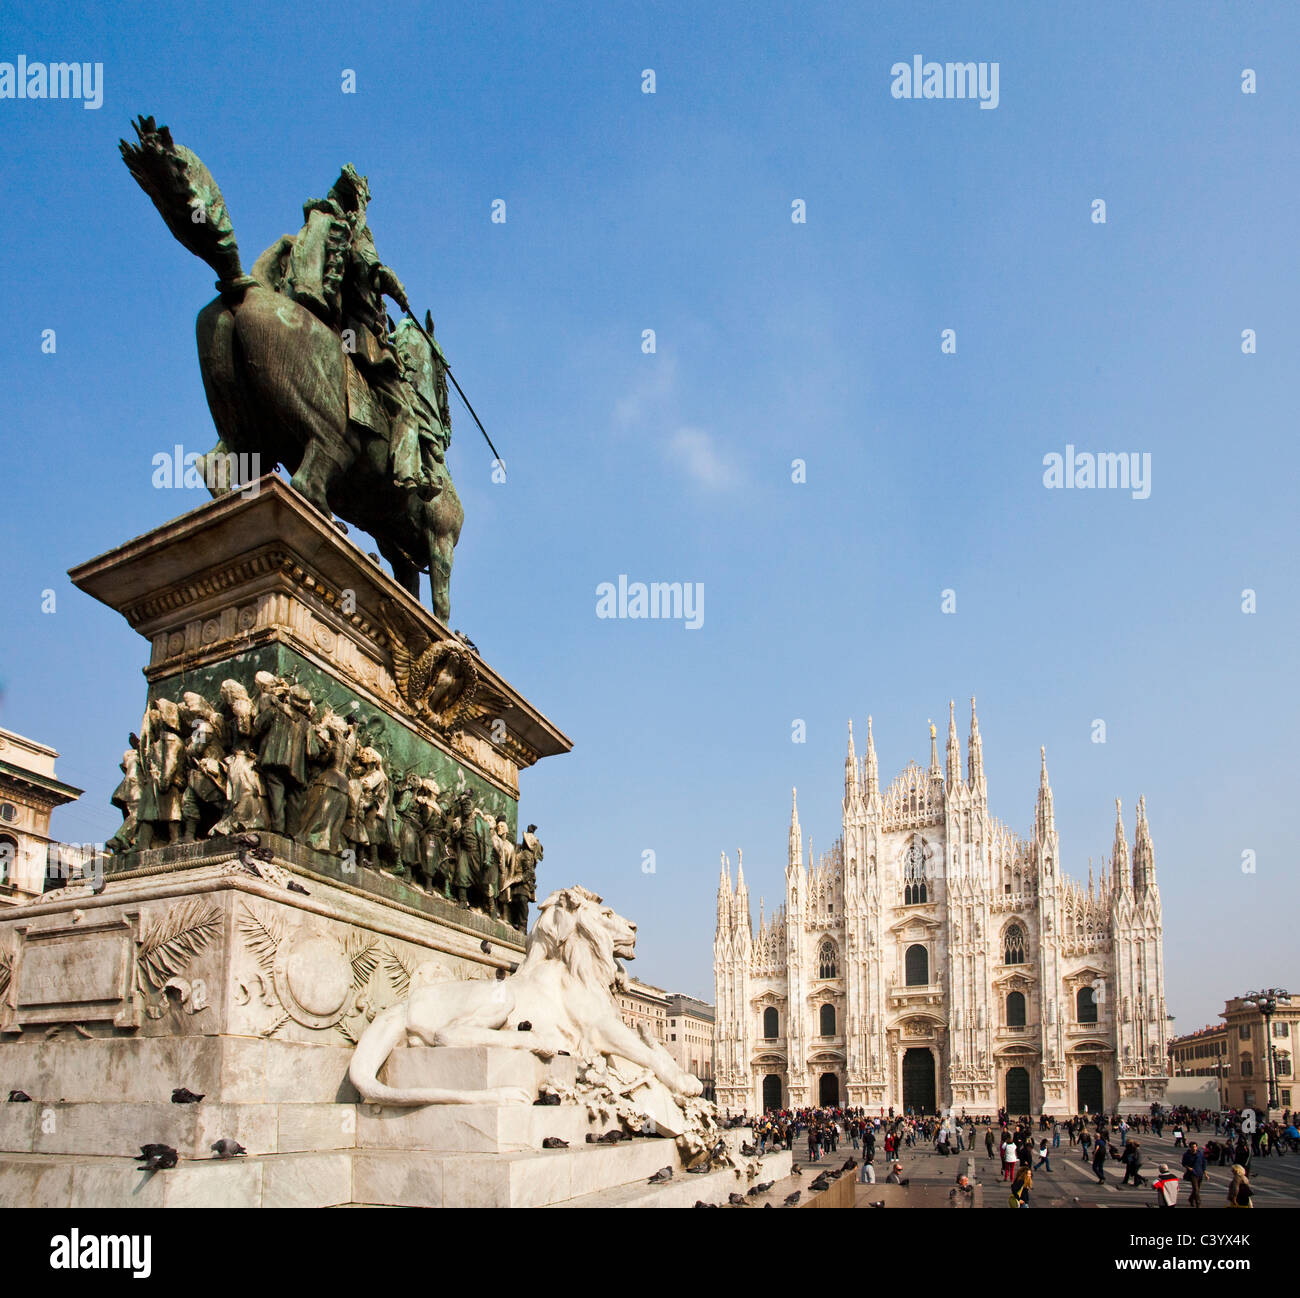 Italy, Europe, Milano, Milan, cathedral, dome, church, place, lion, statue, tourist, rider's statue - Stock Image